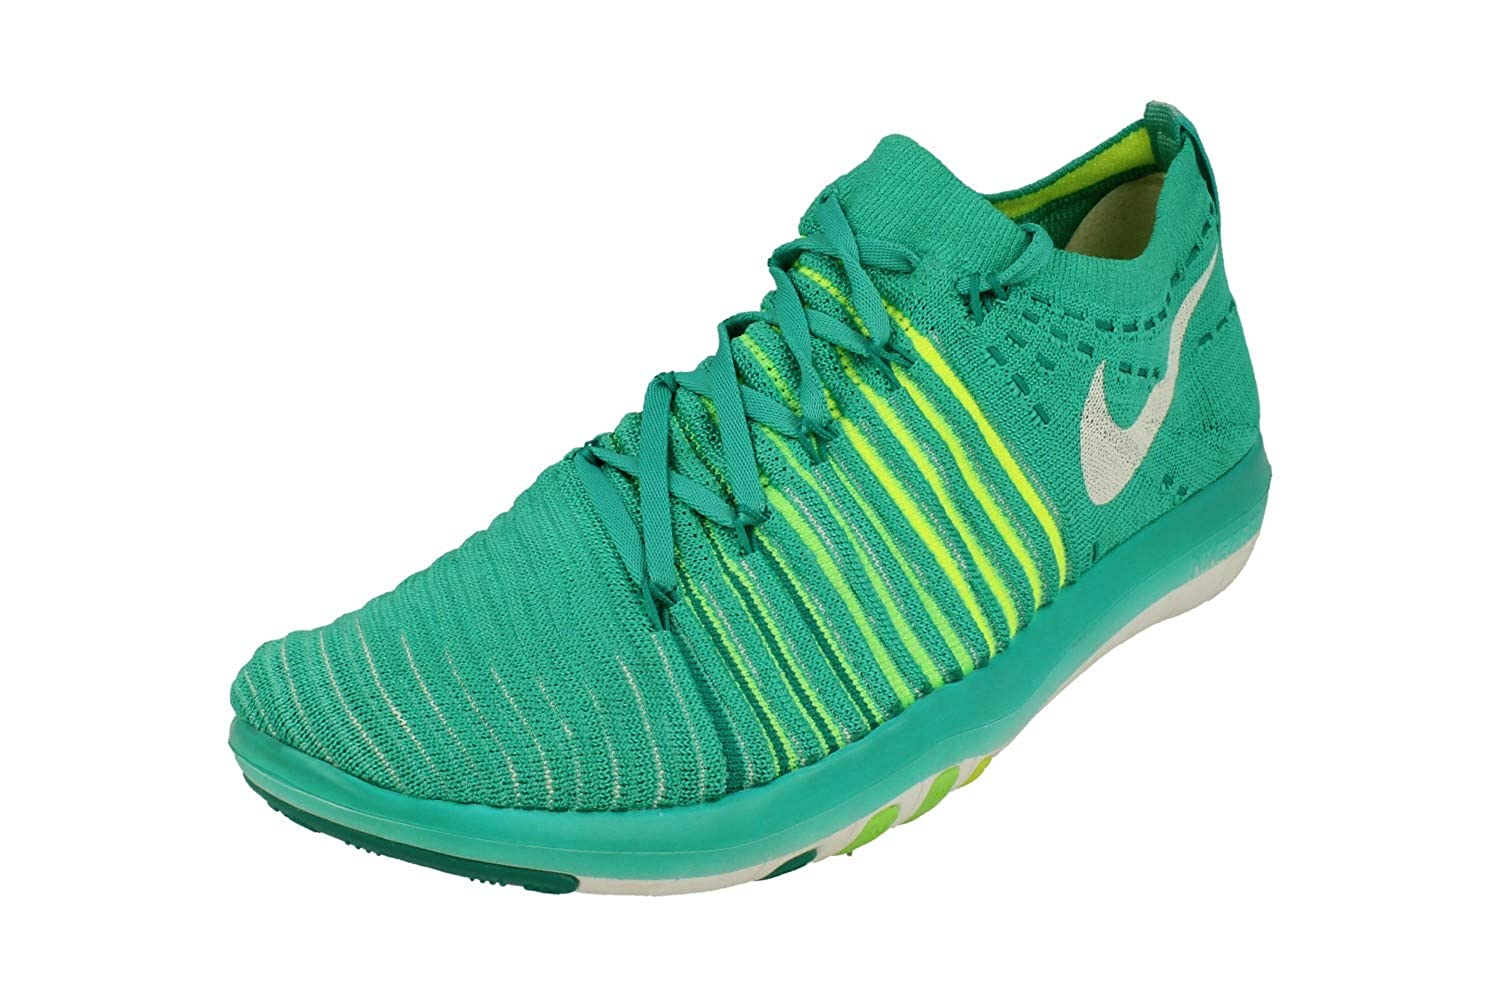 8ec6c54ffab7c Nike Free Transform Flyknit Womens Running Trainers 833410 Sneakers Shoes  (US 6.5, Clear Jade White Voltage Green 301)